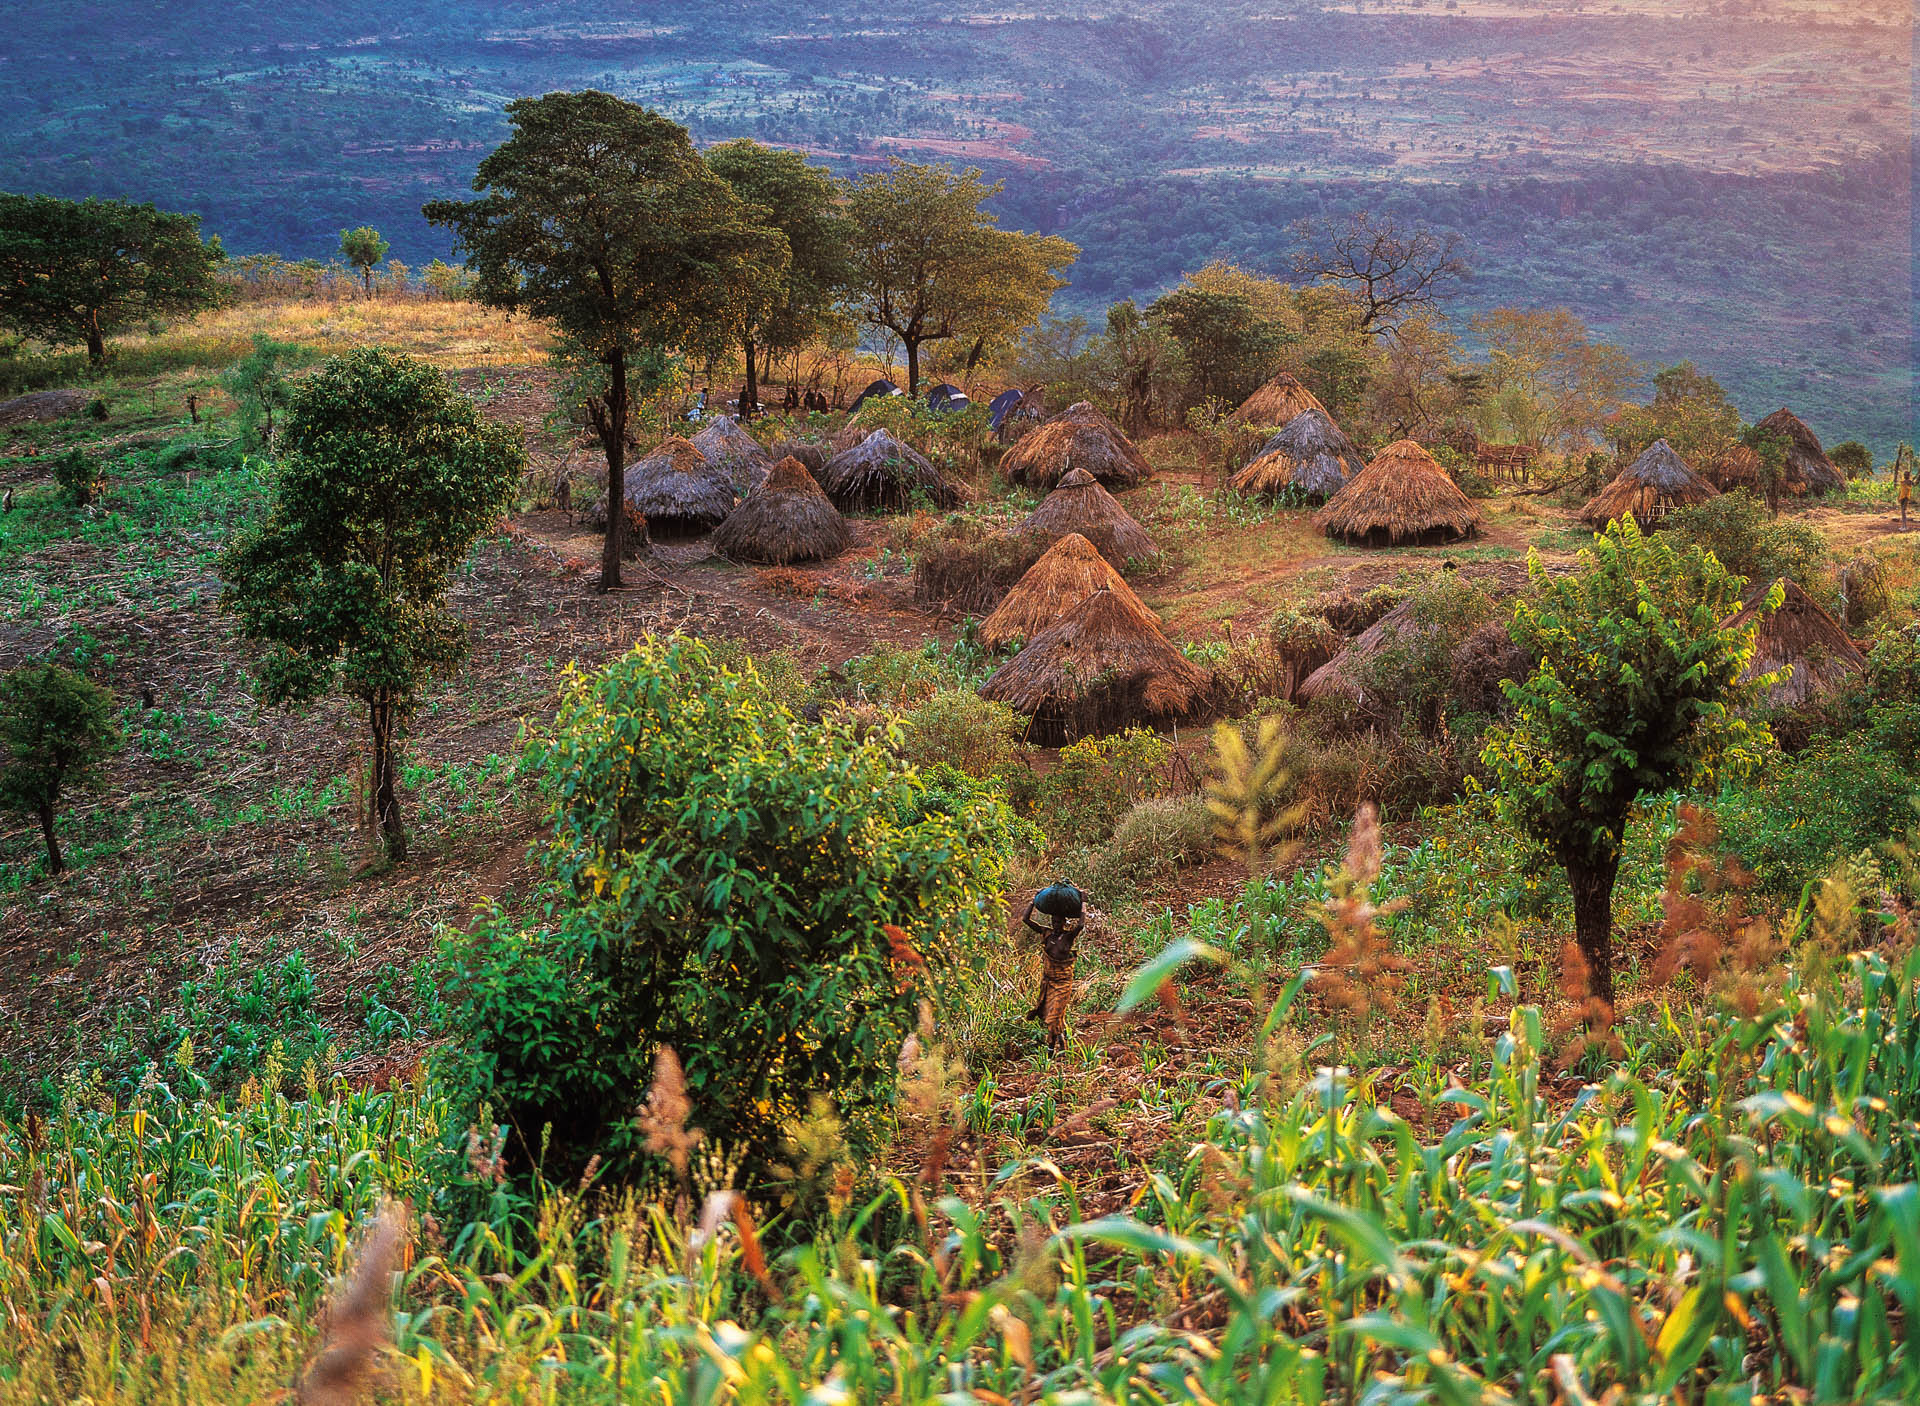 The Surma village of Kormu at dawn, about thirty domed huts.